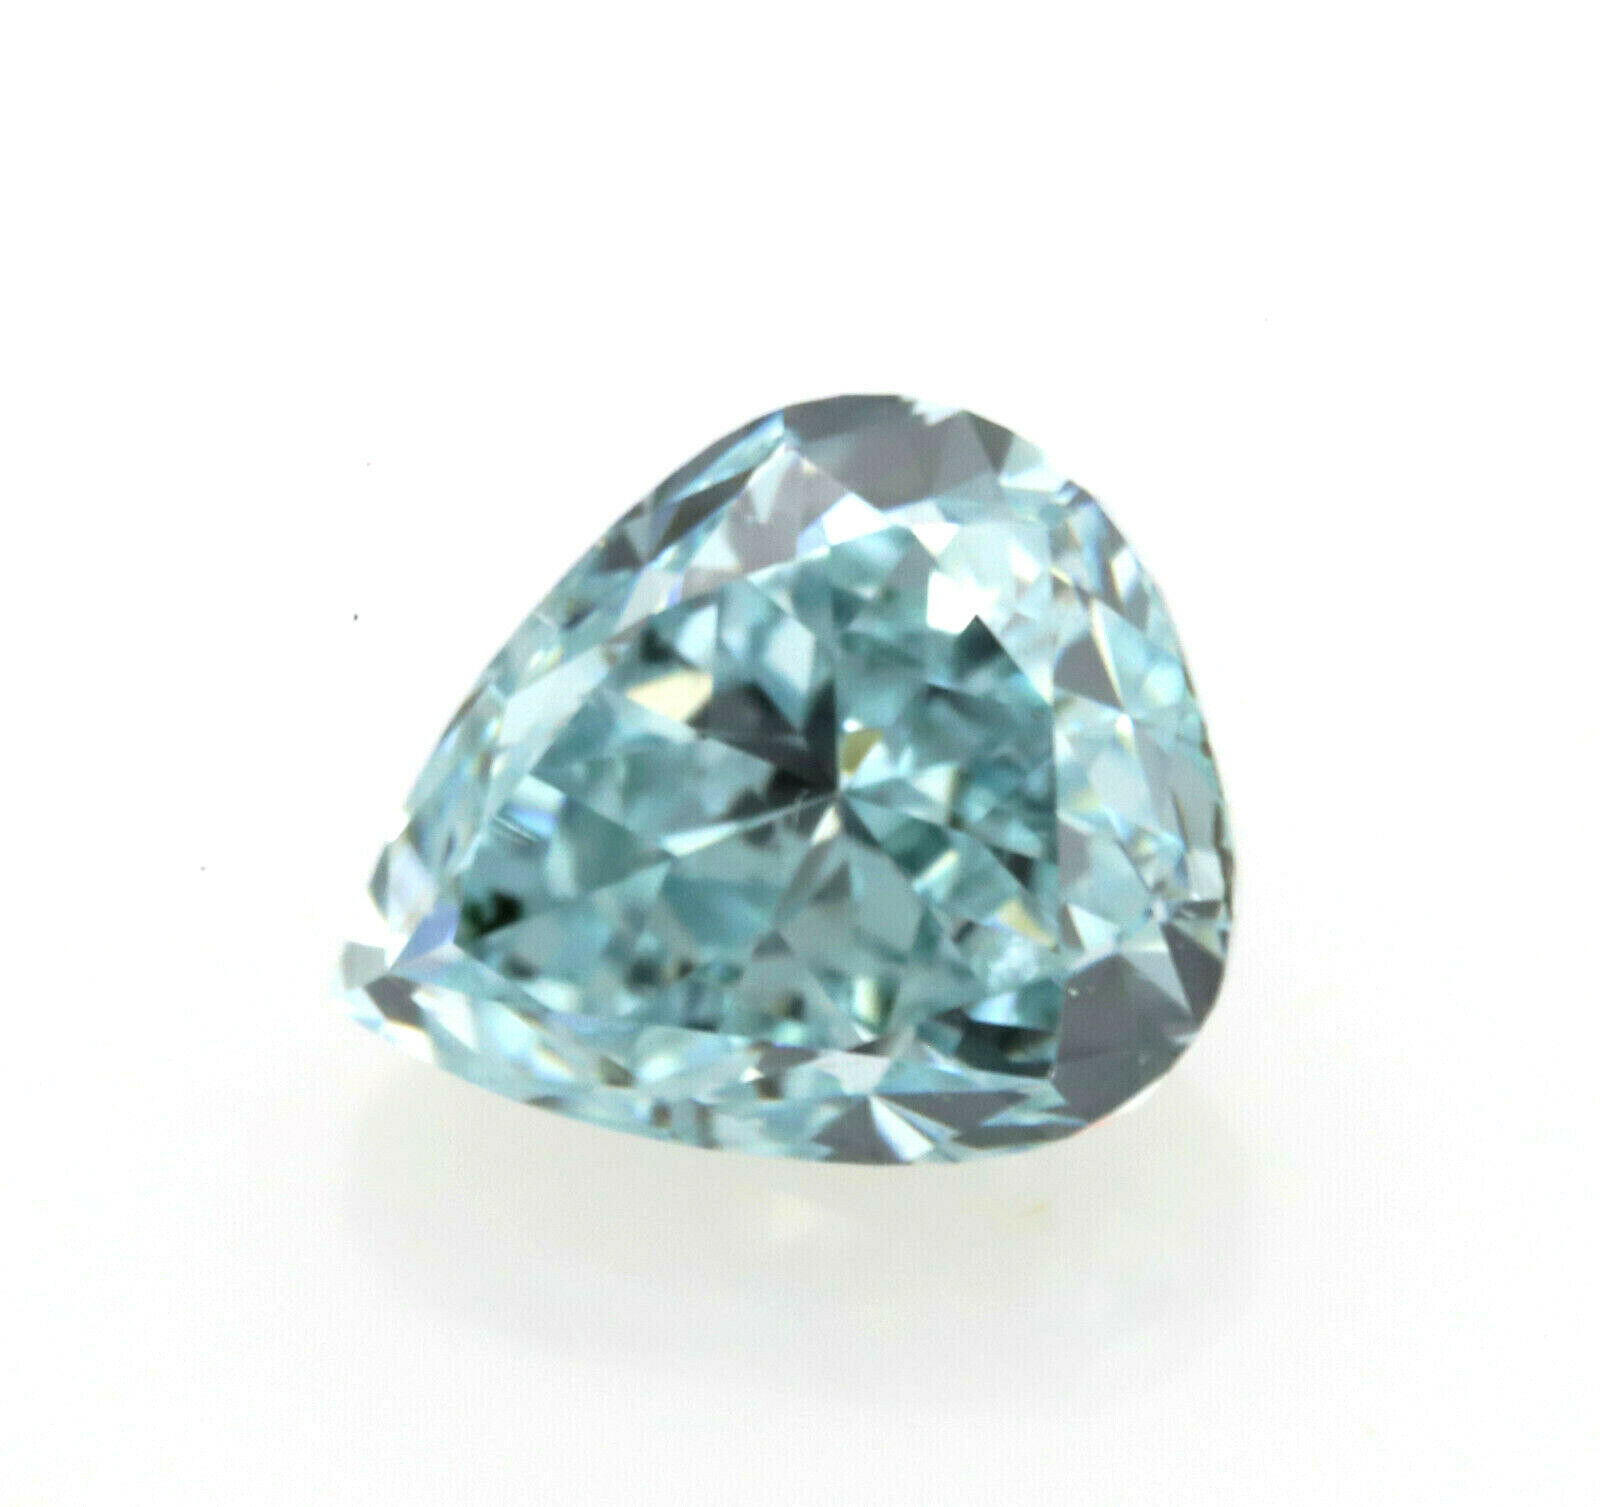 Diamonds - Clearness Explained